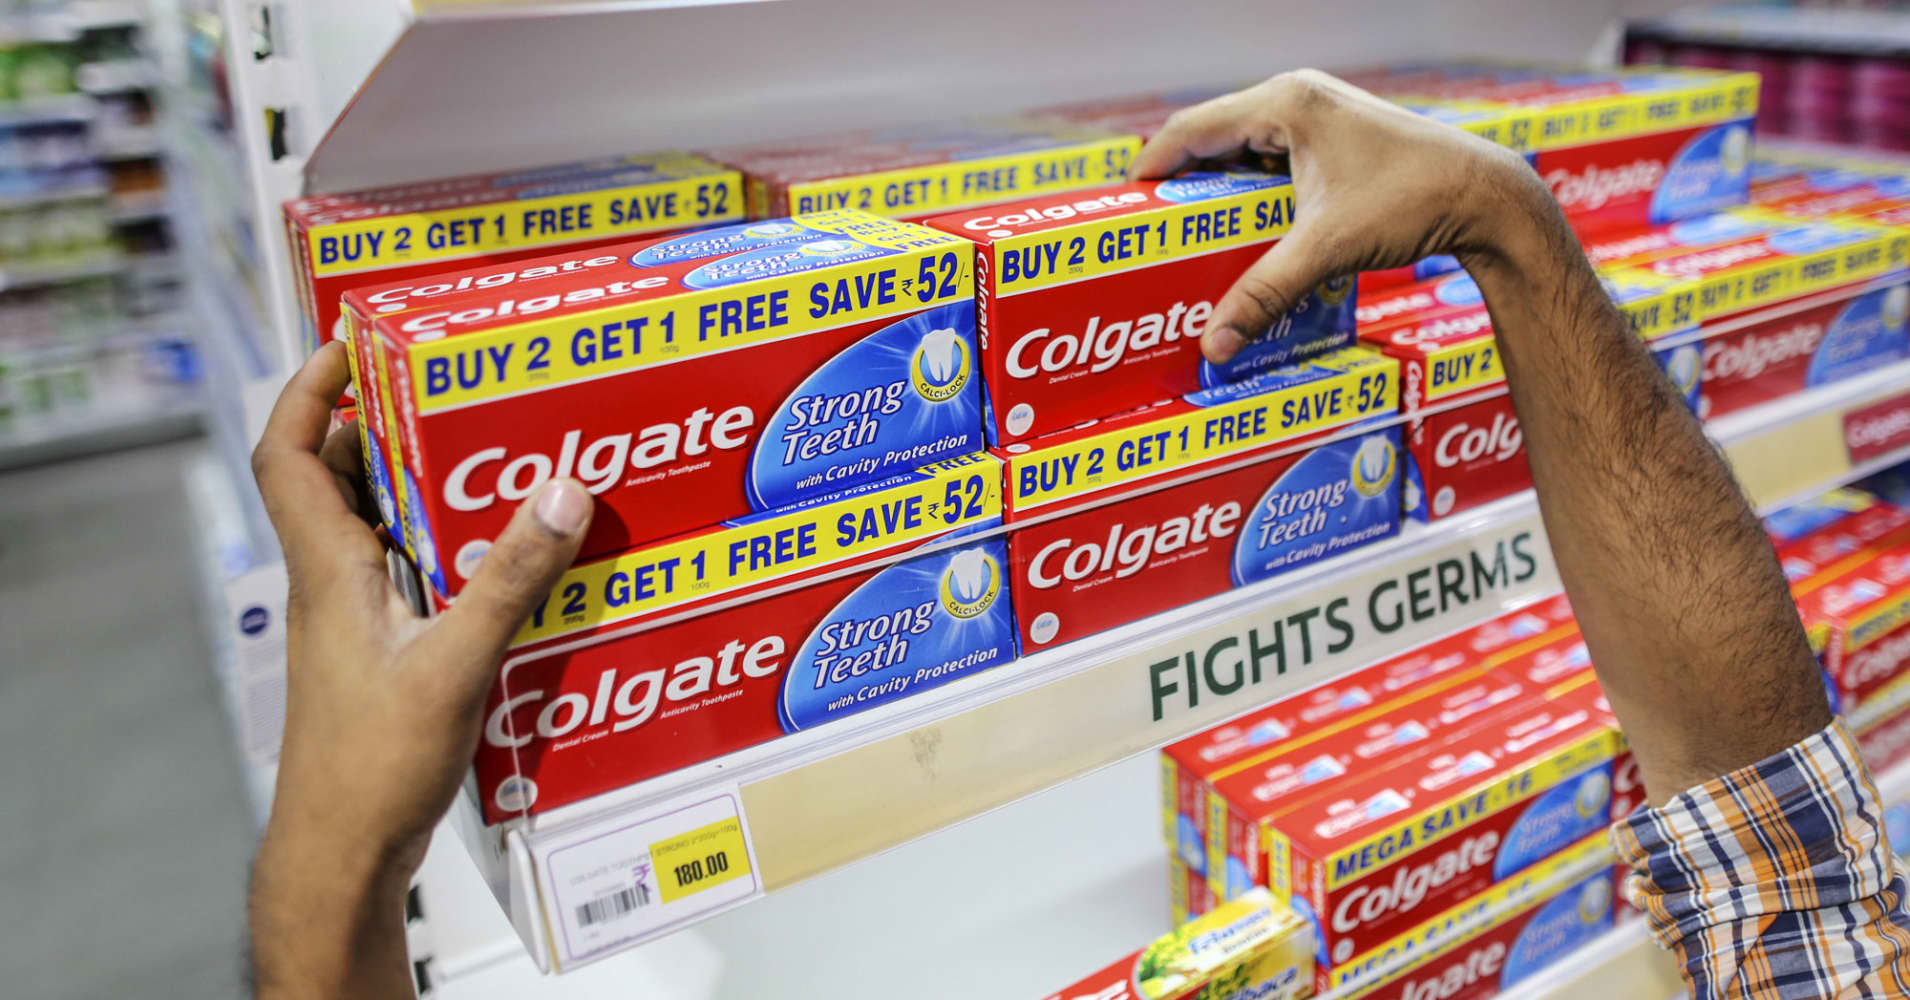 Colgate's sales disappoint on tepid emerging market demand